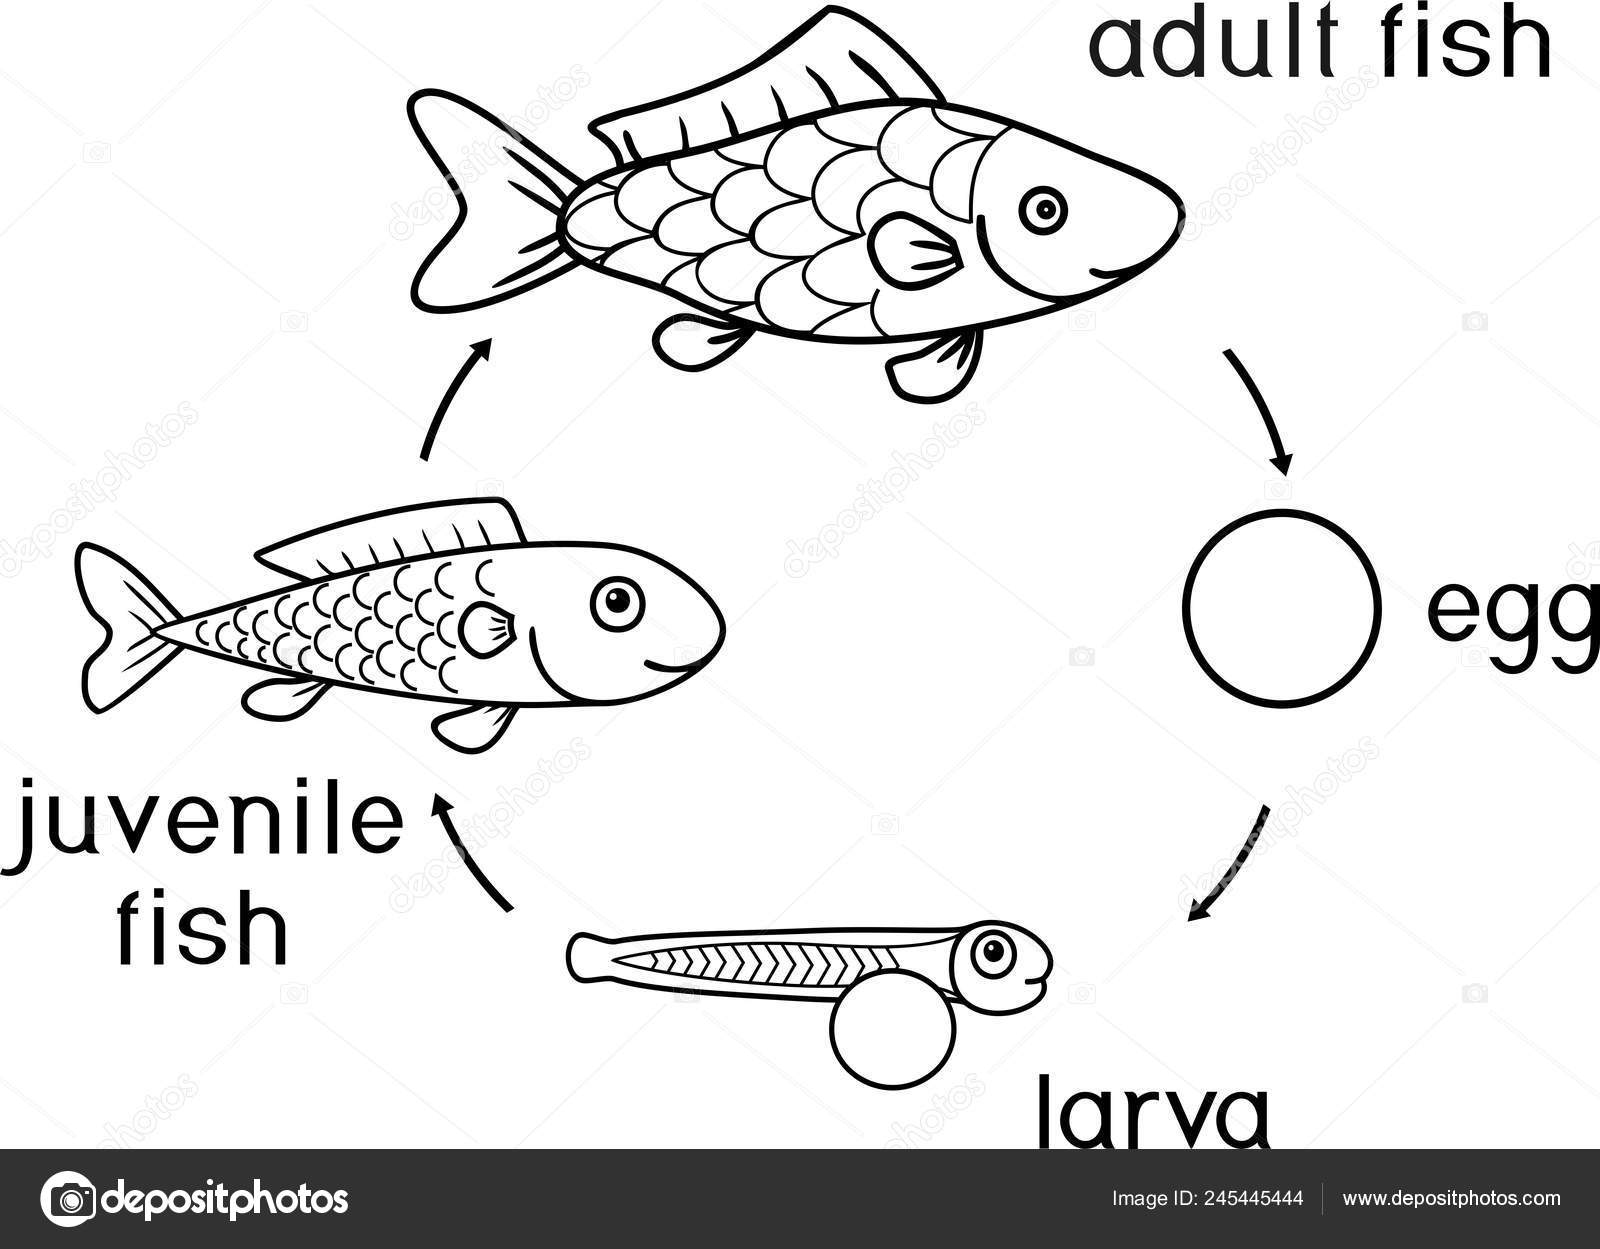 Coloring Page Life Cycle Fish Sequence Stages Development